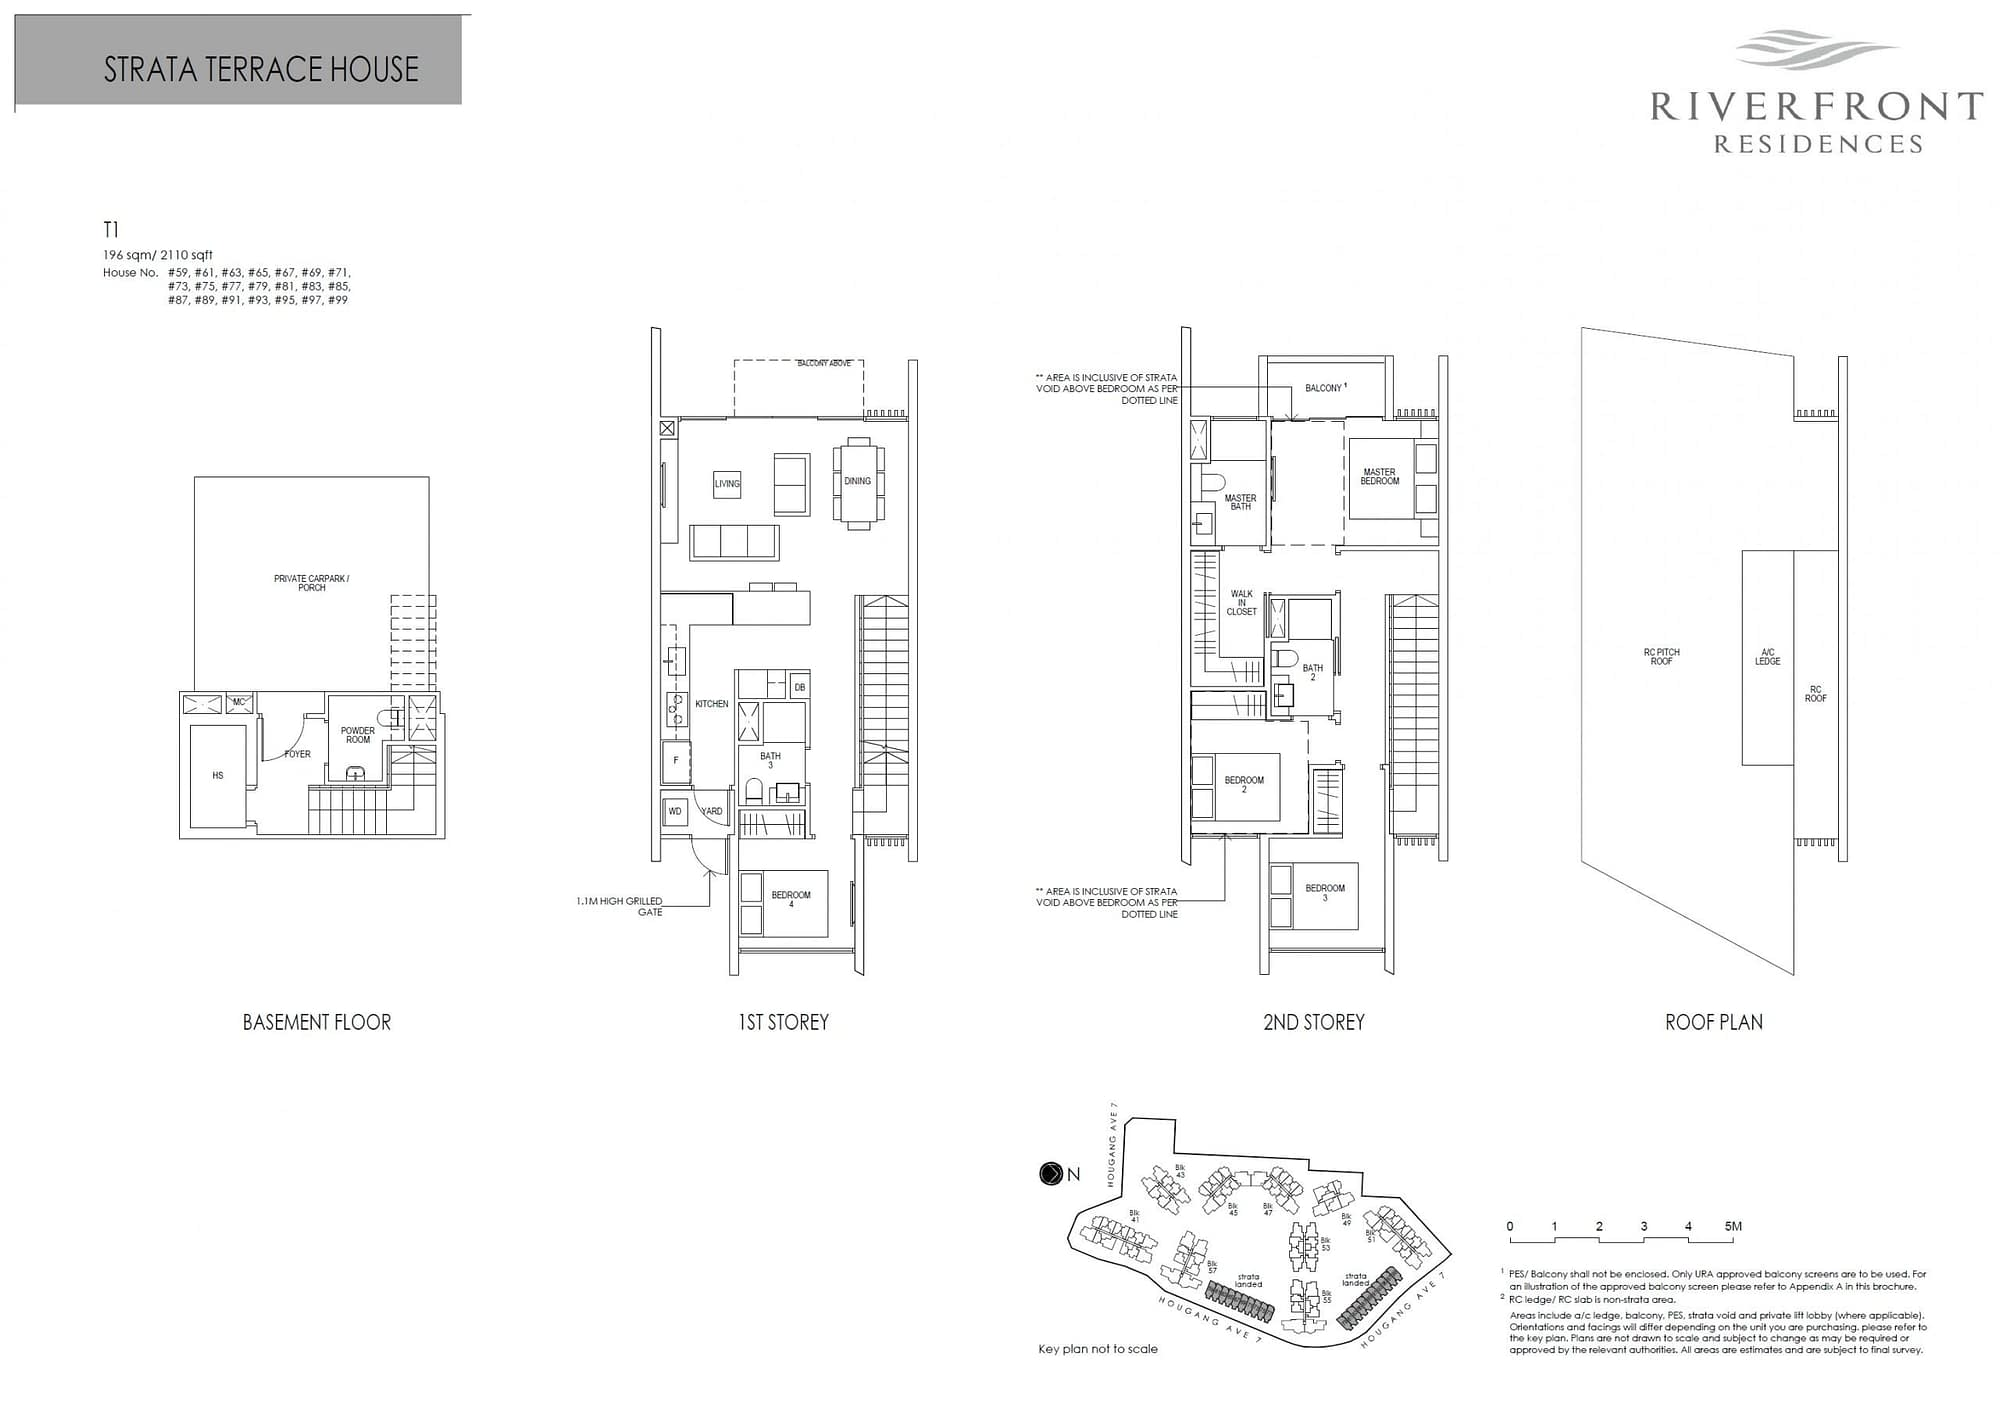 Riverfront Residences Riverfront Residences Floorplan T1 scaled